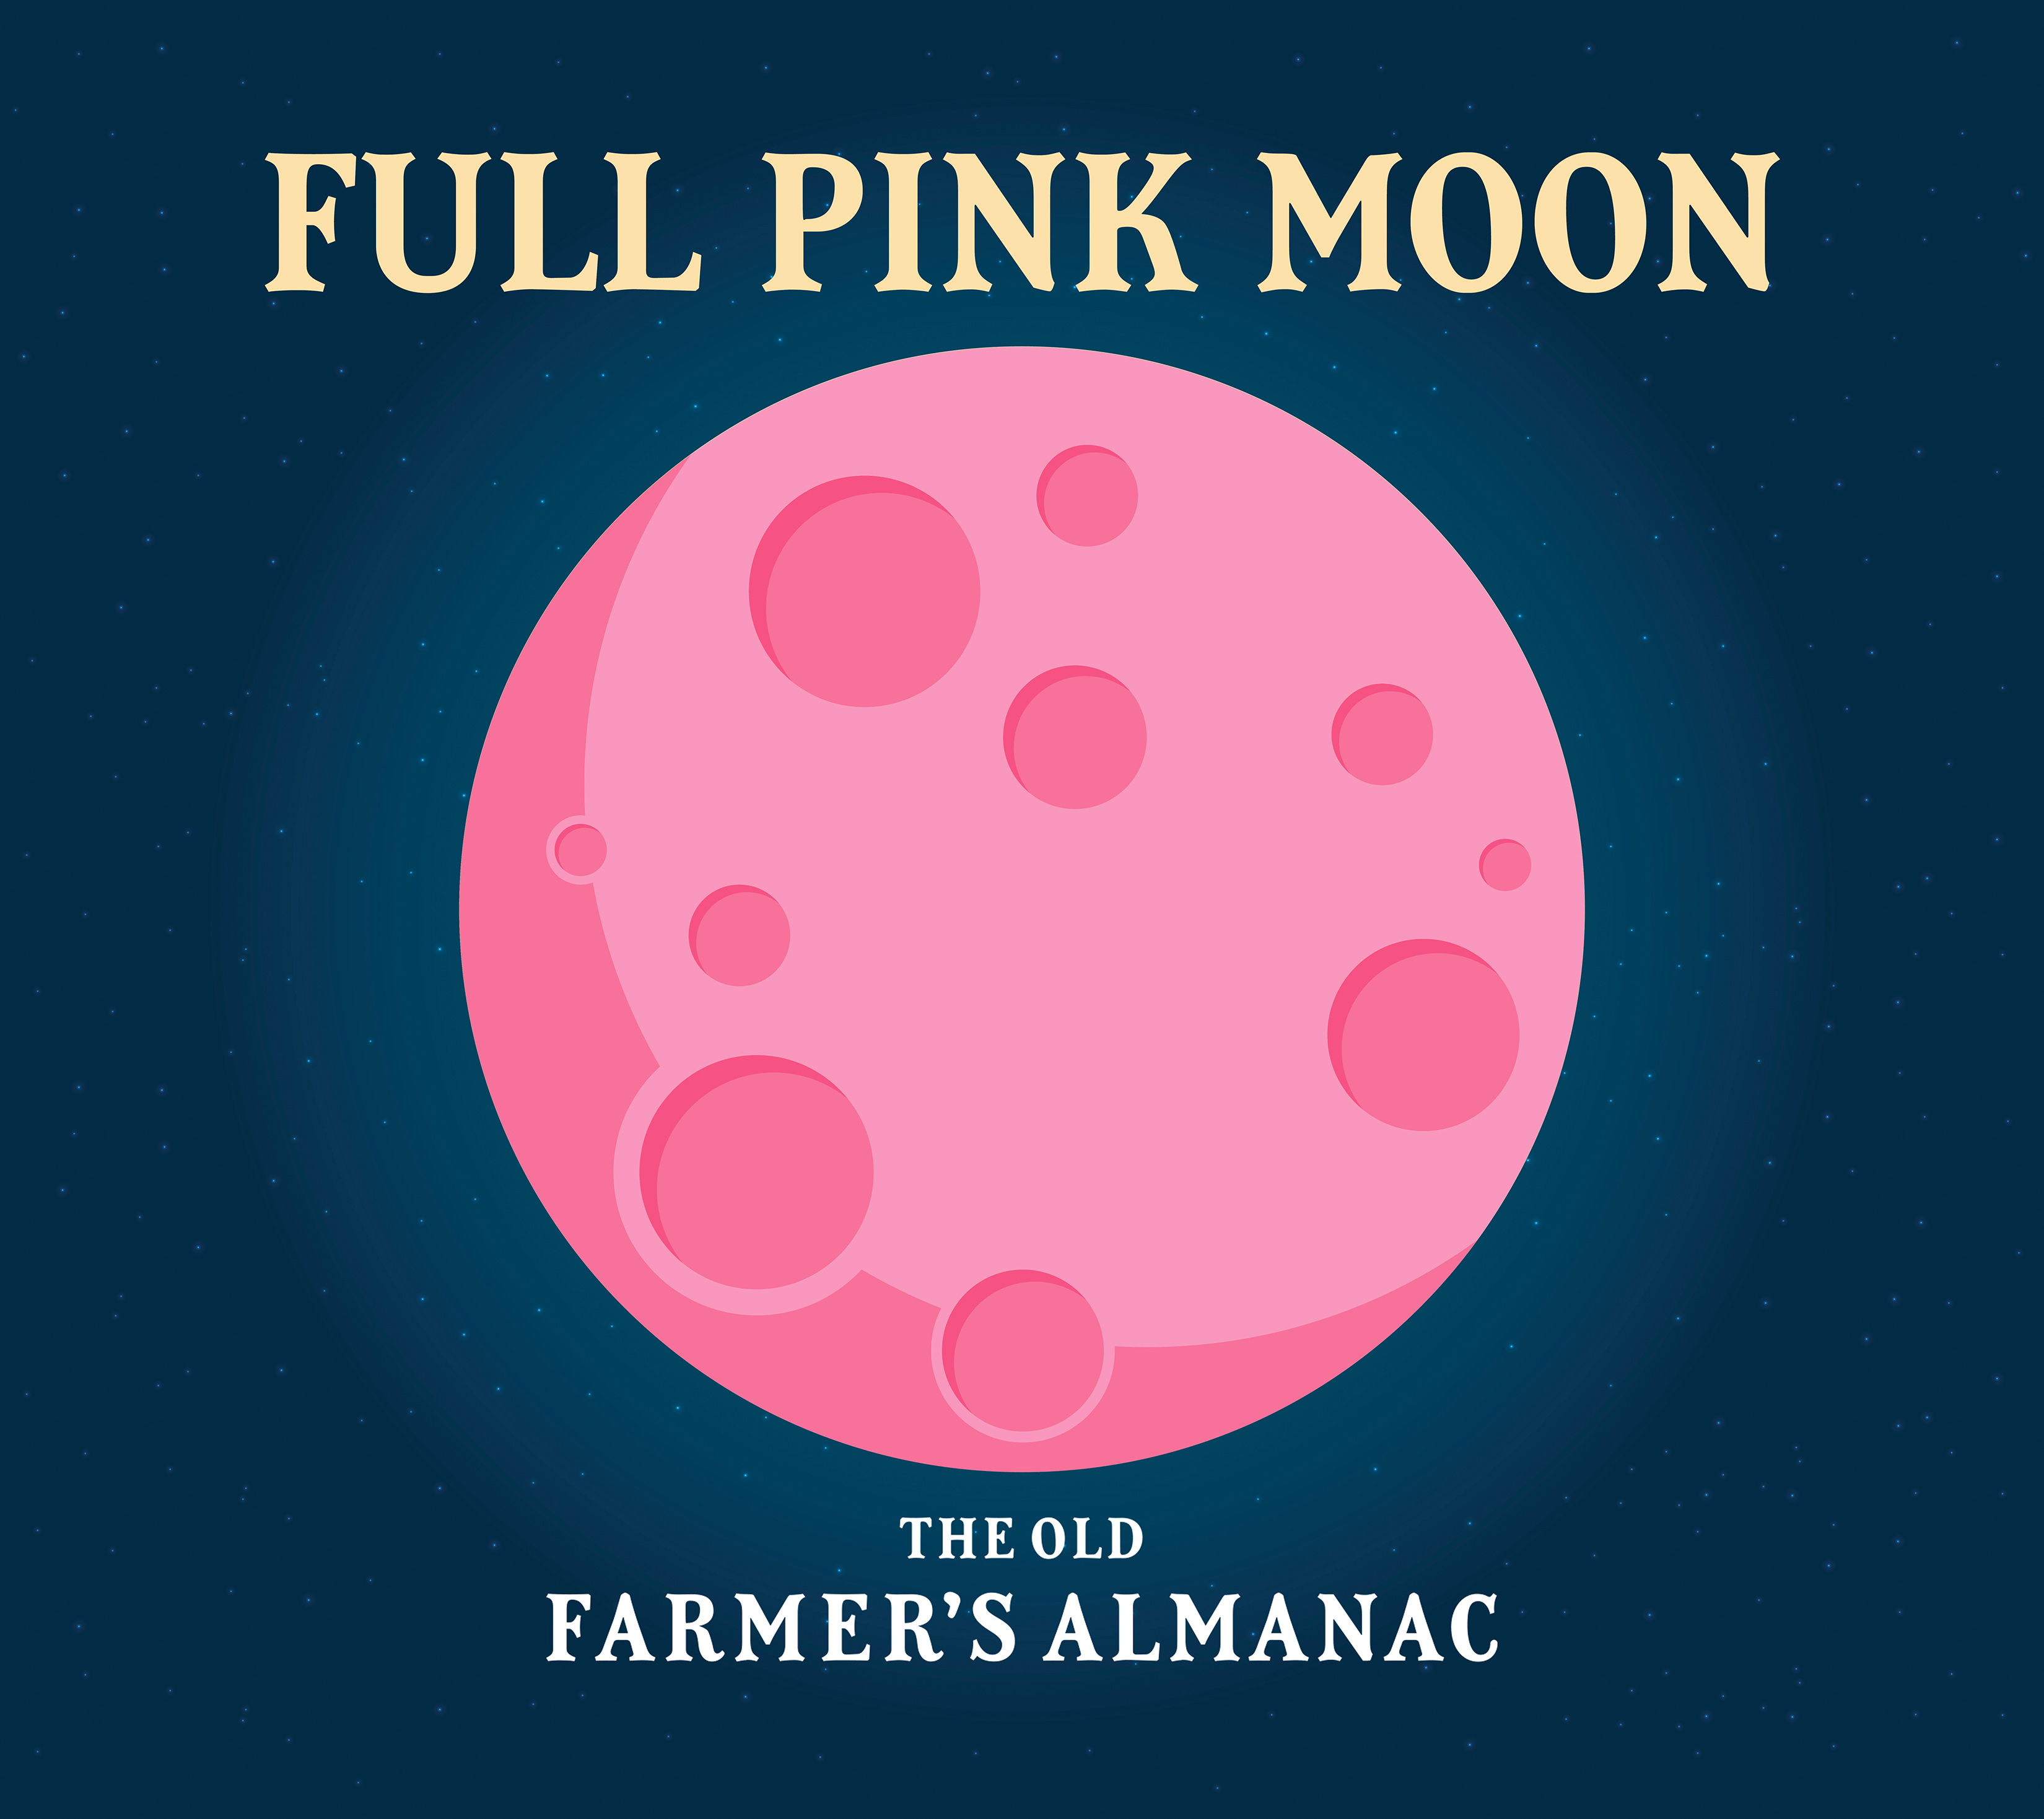 Lunar Days Calendar December 2020 Chicago Full Moon for April 2019: The Full Pink Moon | The Old Farmer's